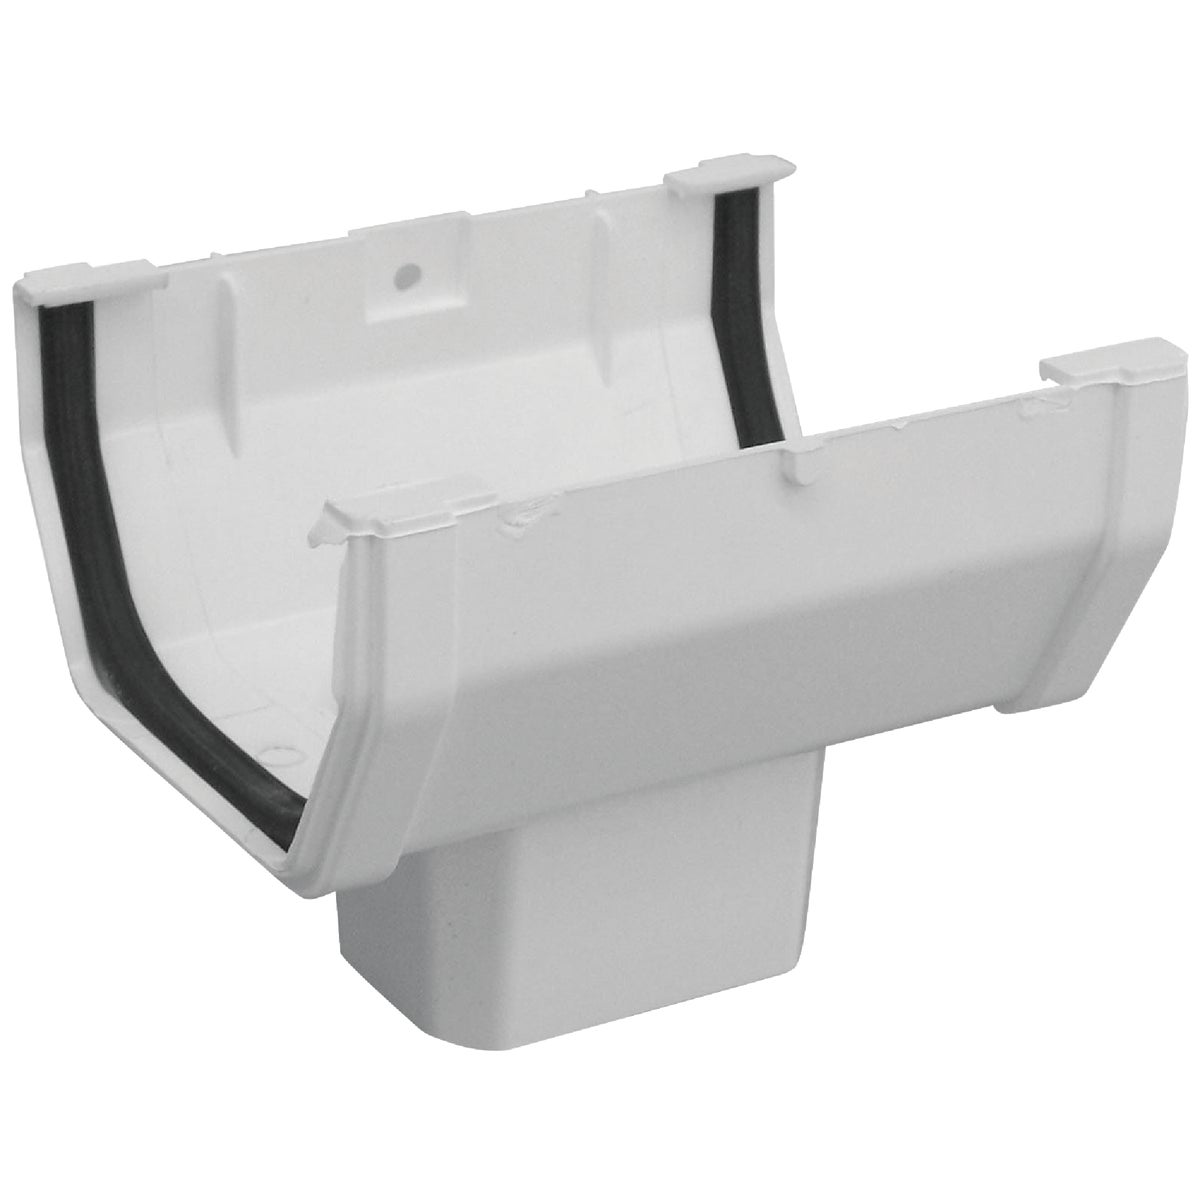 WHT A-DROP OUTLET - RW144A by Genova Products